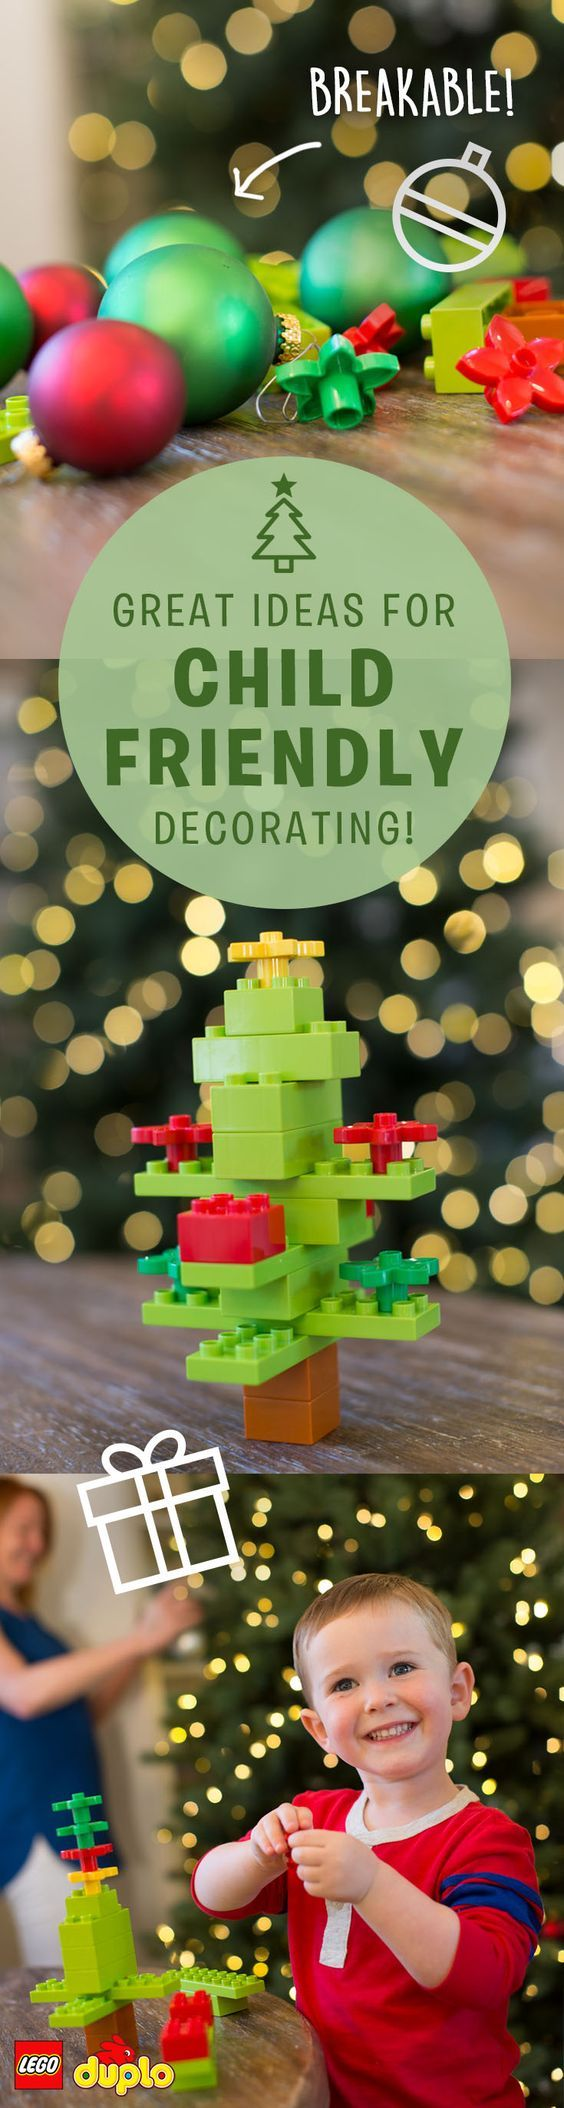 Deck the halls with LEGO DUPLO!